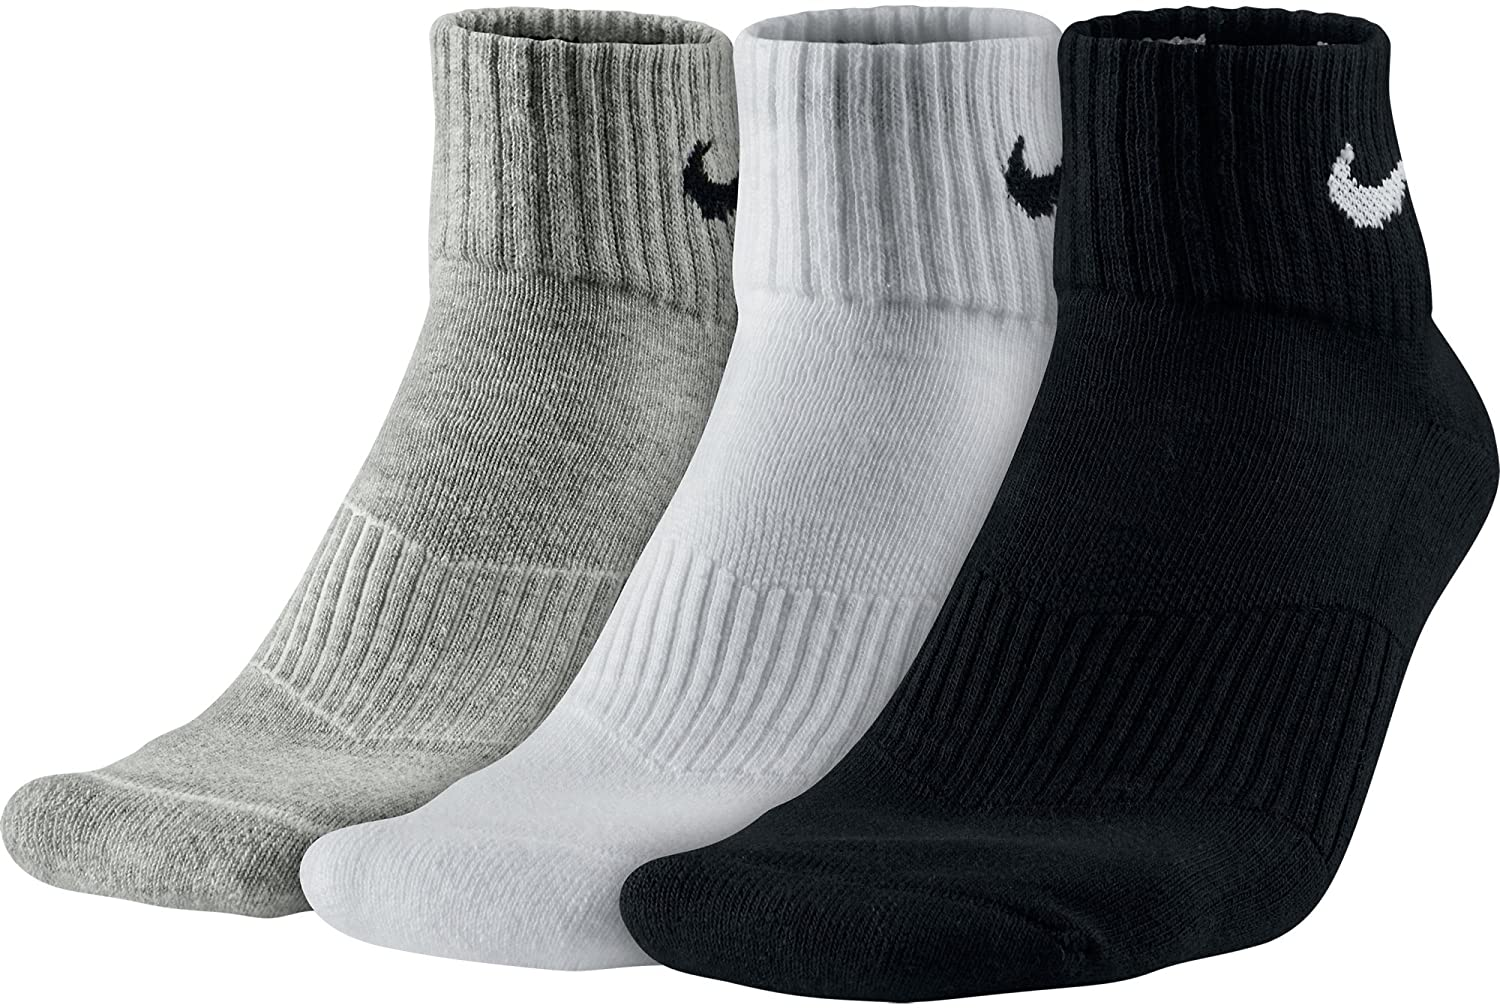 Fielmente Natura Empresario  Buy Nike SX4703-901 3PPK Cushion Quarter Socks, XXX-Large Online ...